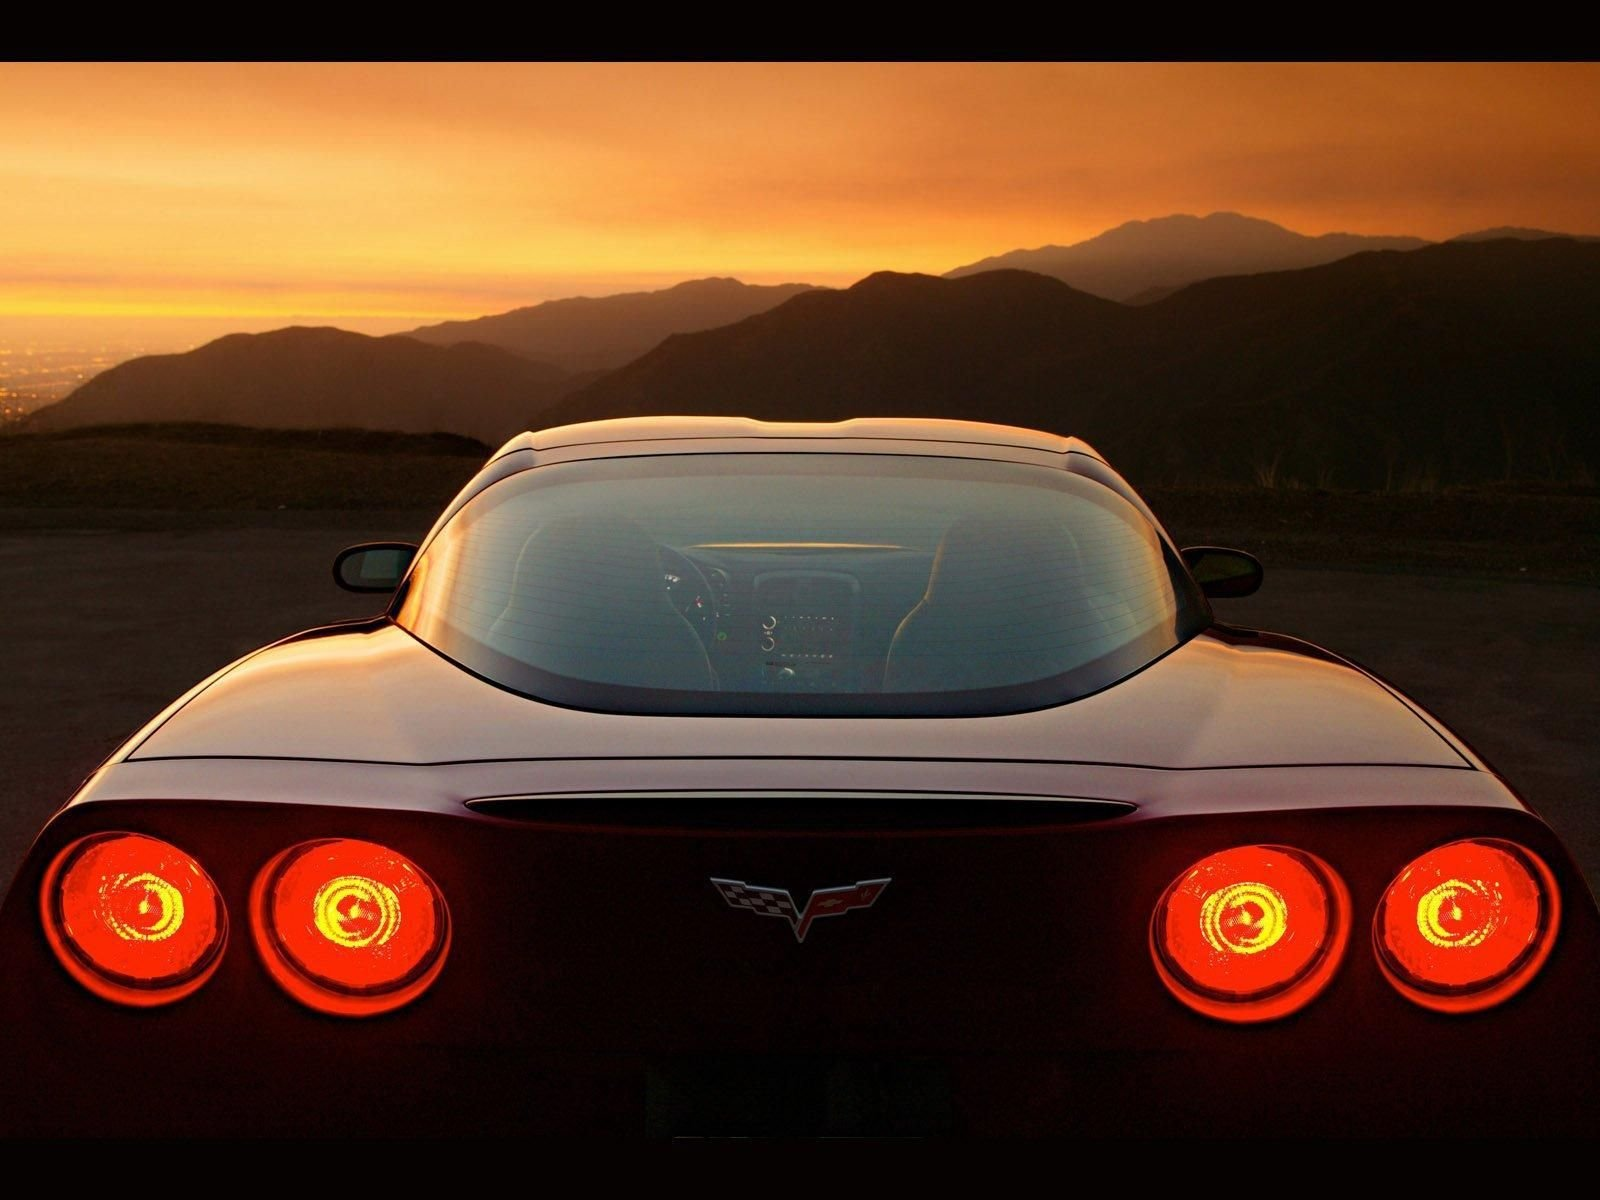 4k Corvette Wallpaper Wallpapersafari